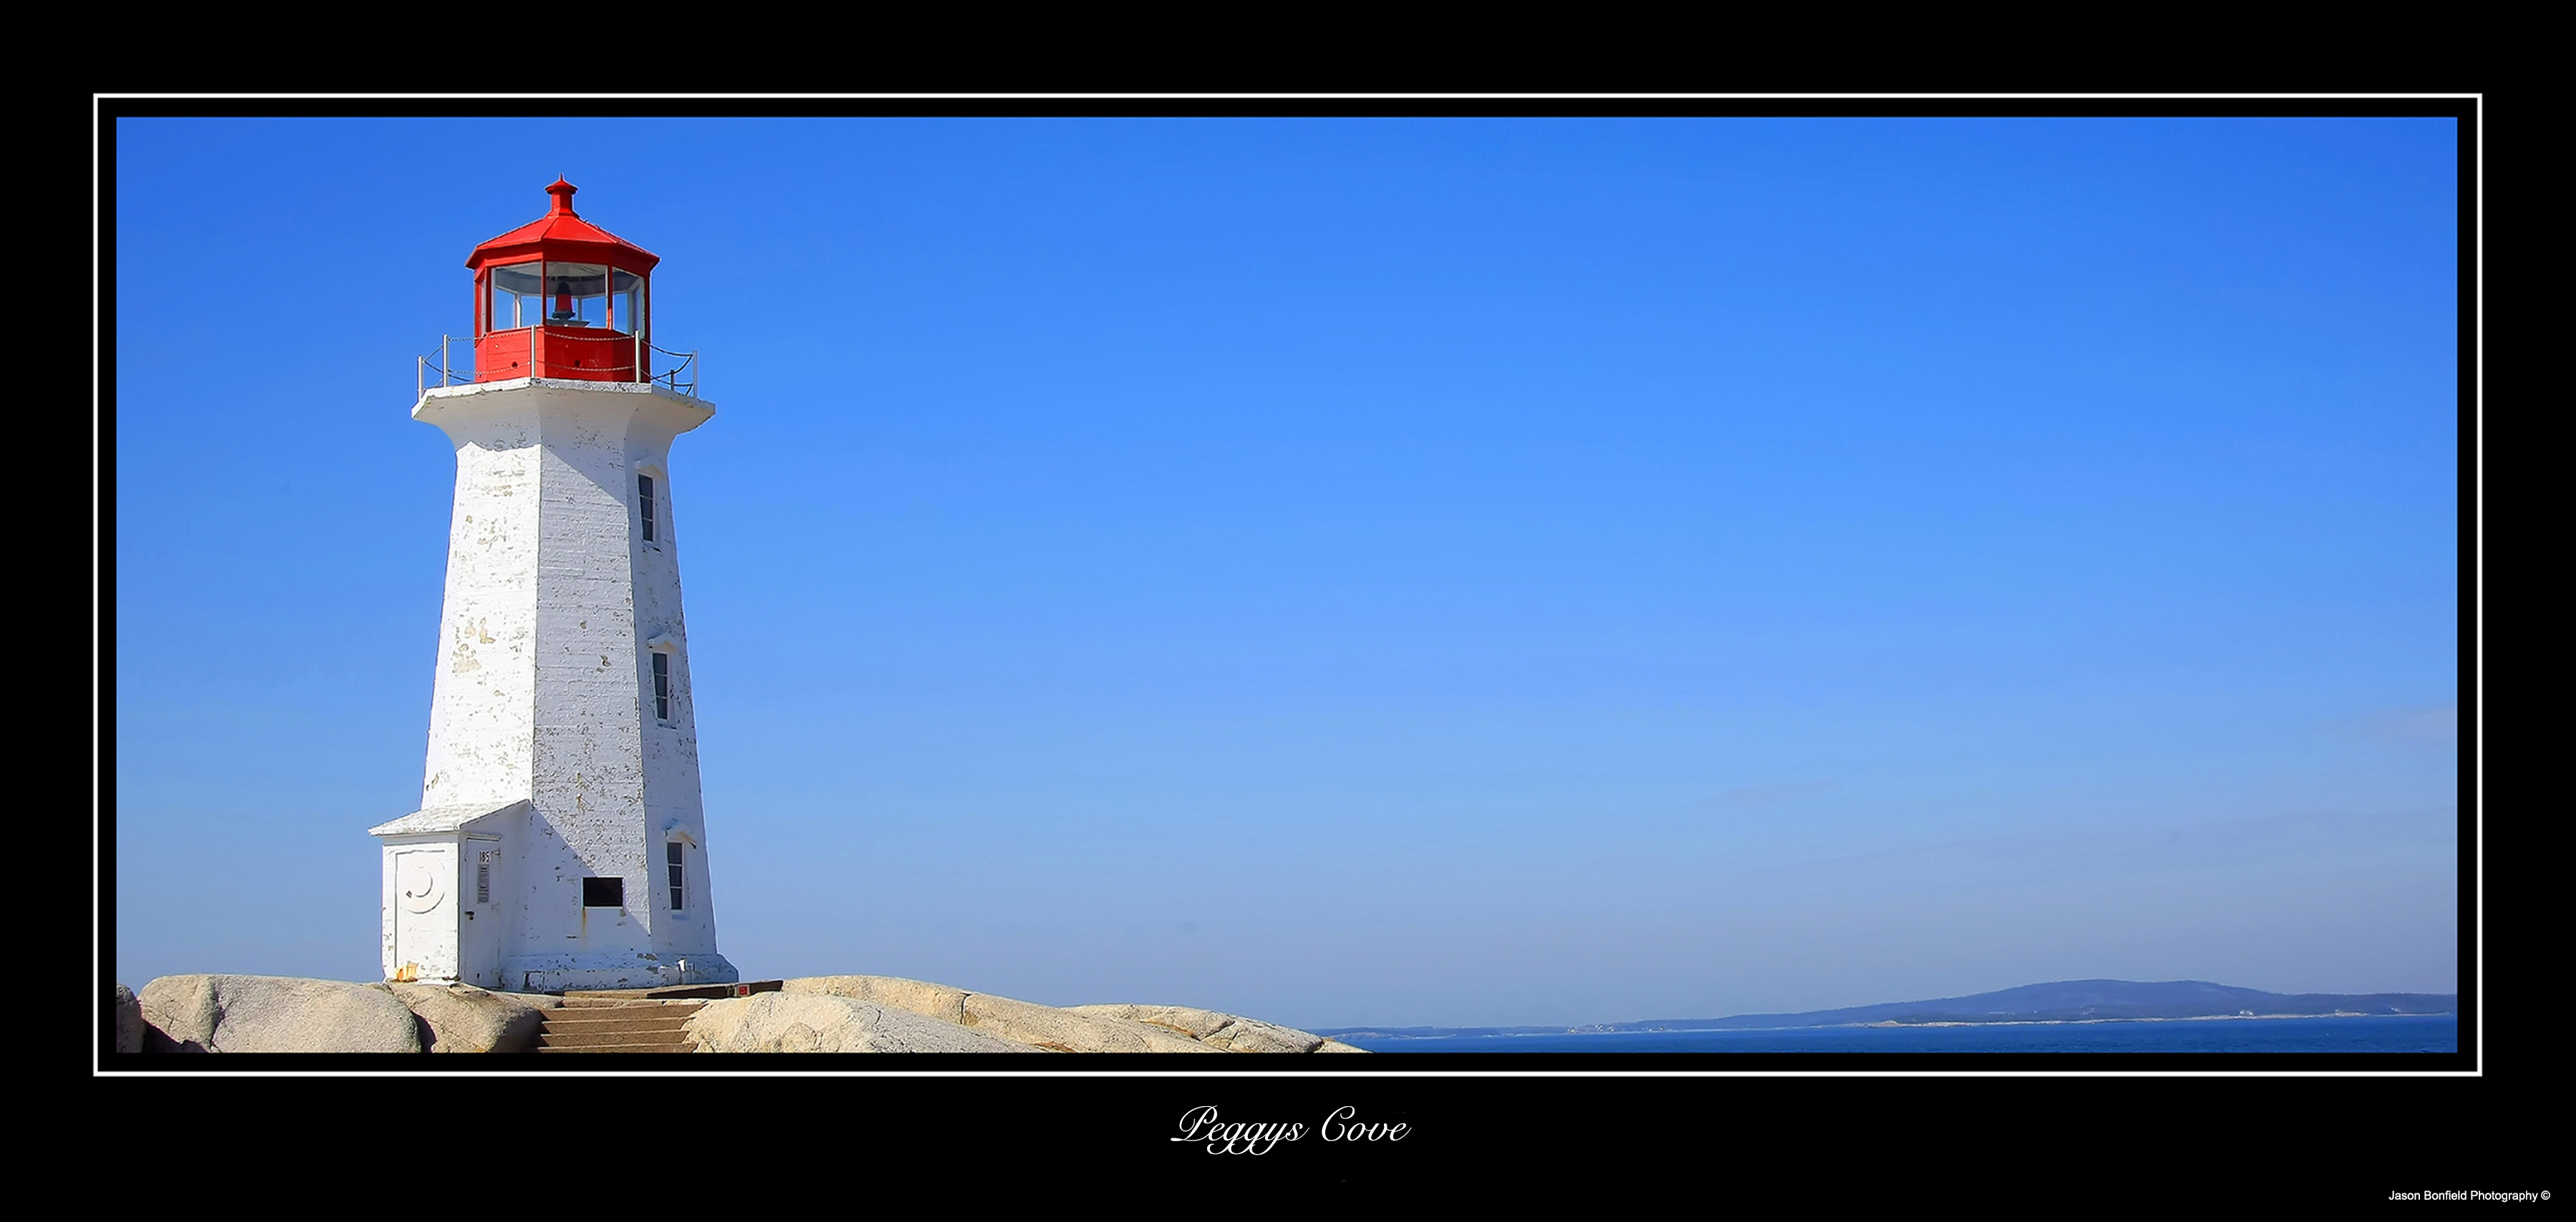 Panoramic landscape picture Peggys cover Lighthouse, Nova Scotia, Canada on a clear blue day.